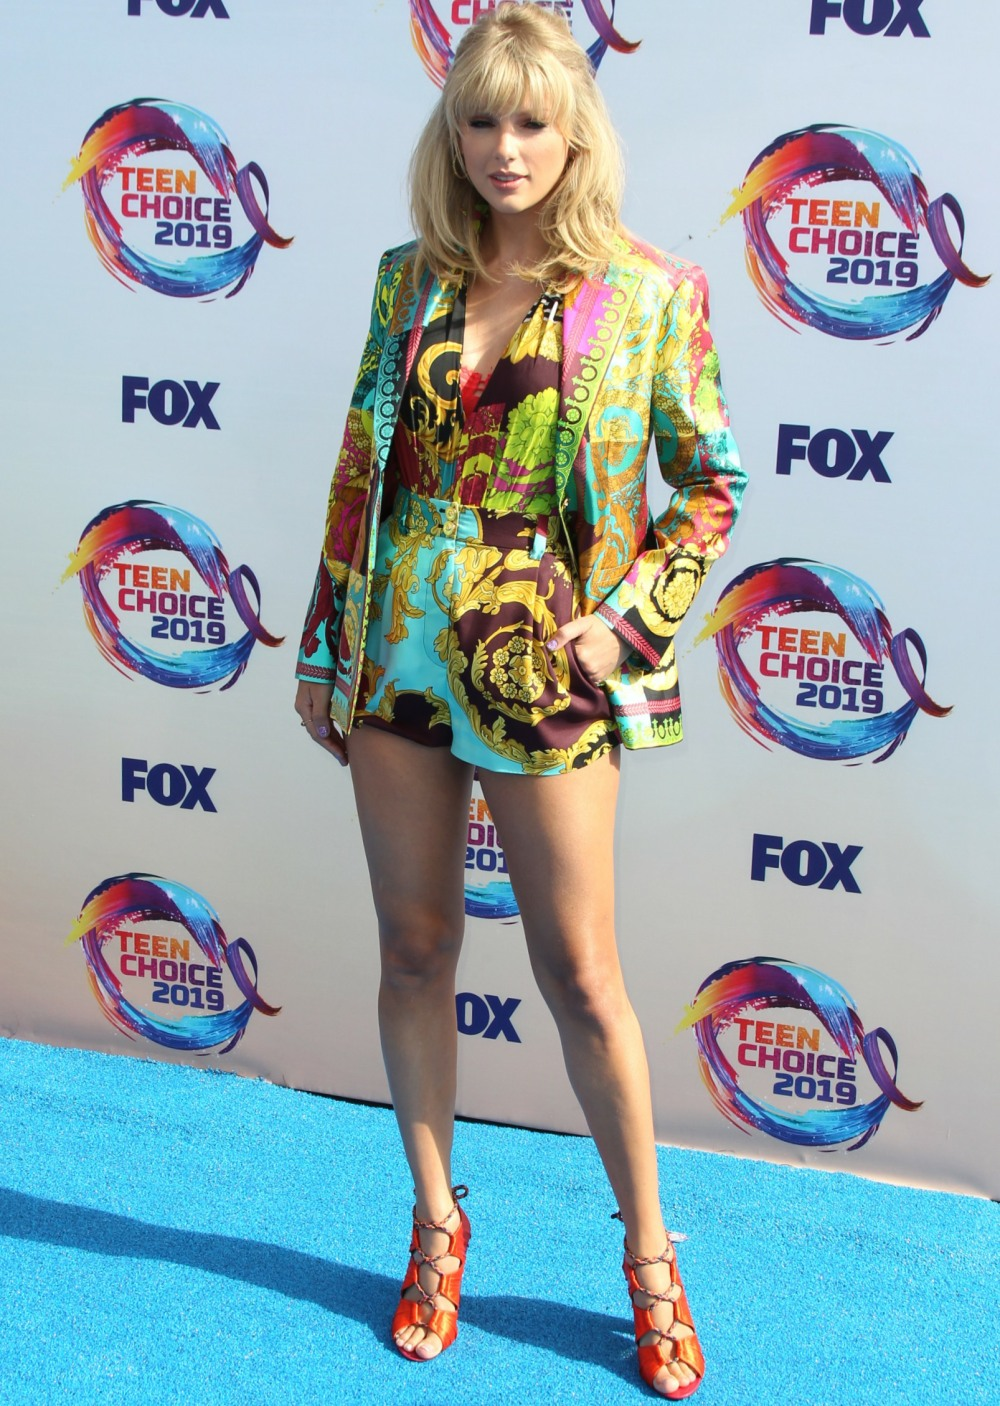 Taylor Swift in a Versace ensemble at the Teen Choice Awards: cute or dated?